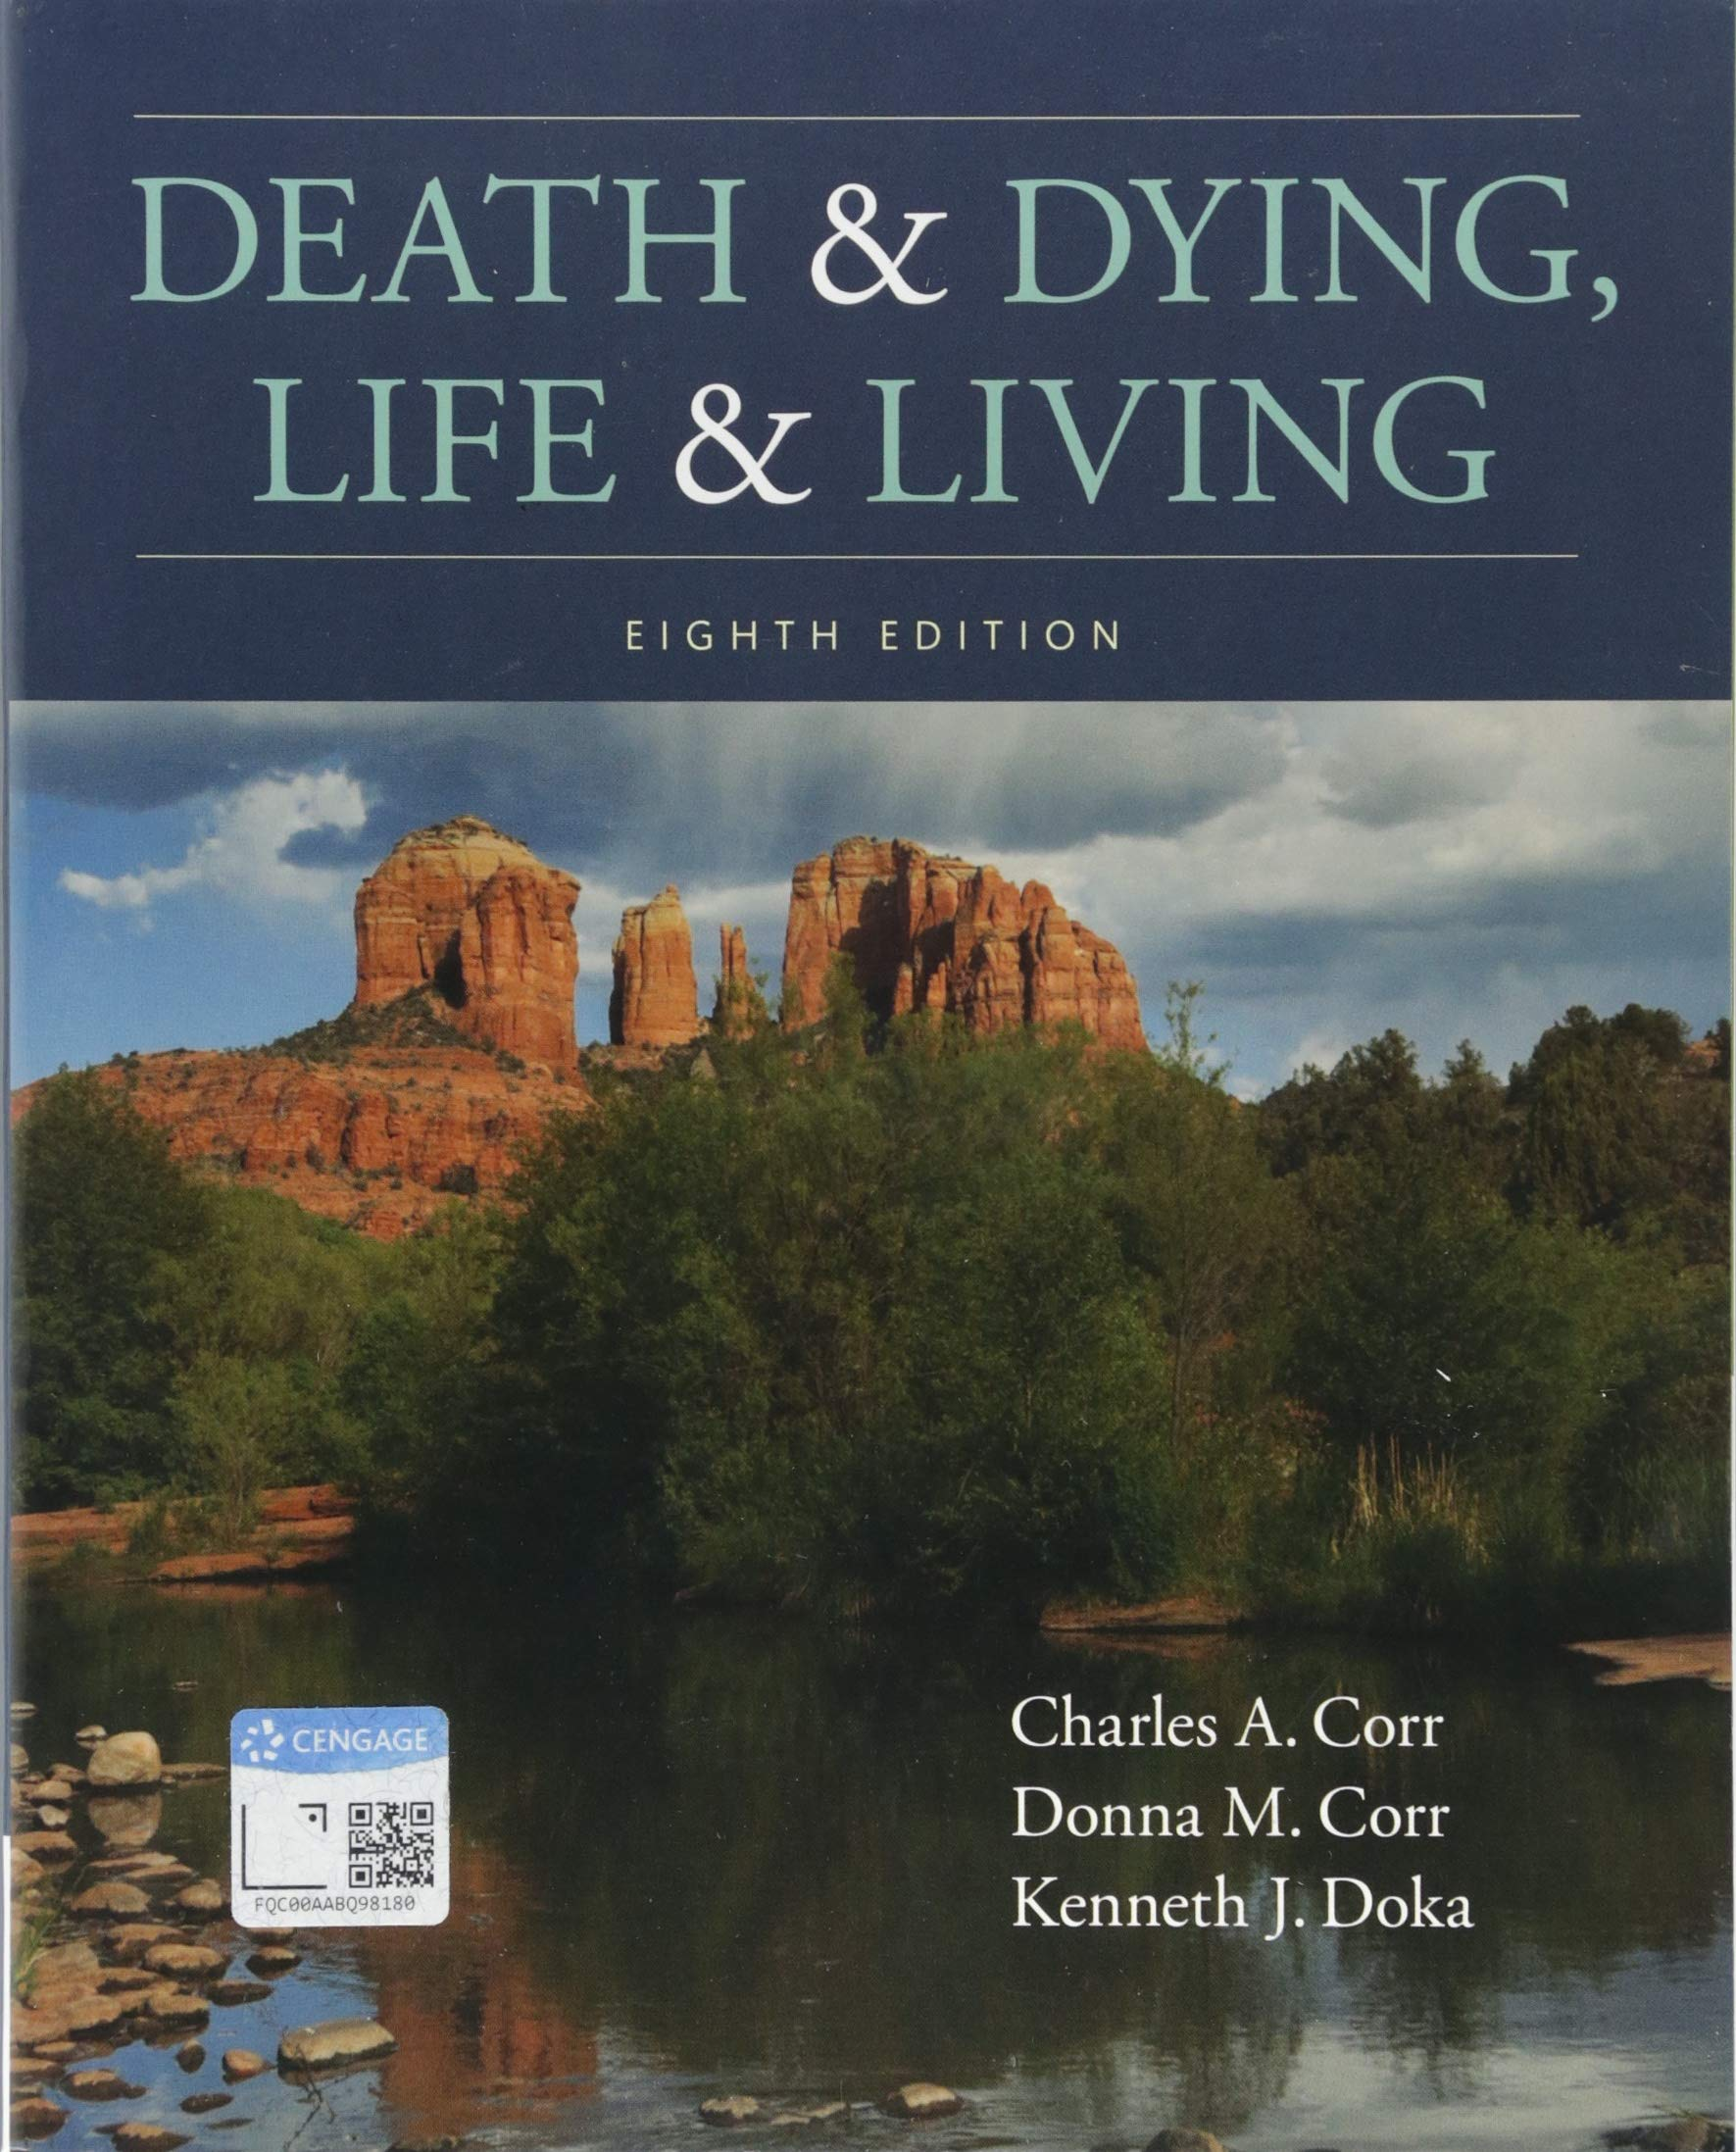 Image OfDeath & Dying, Life & Living